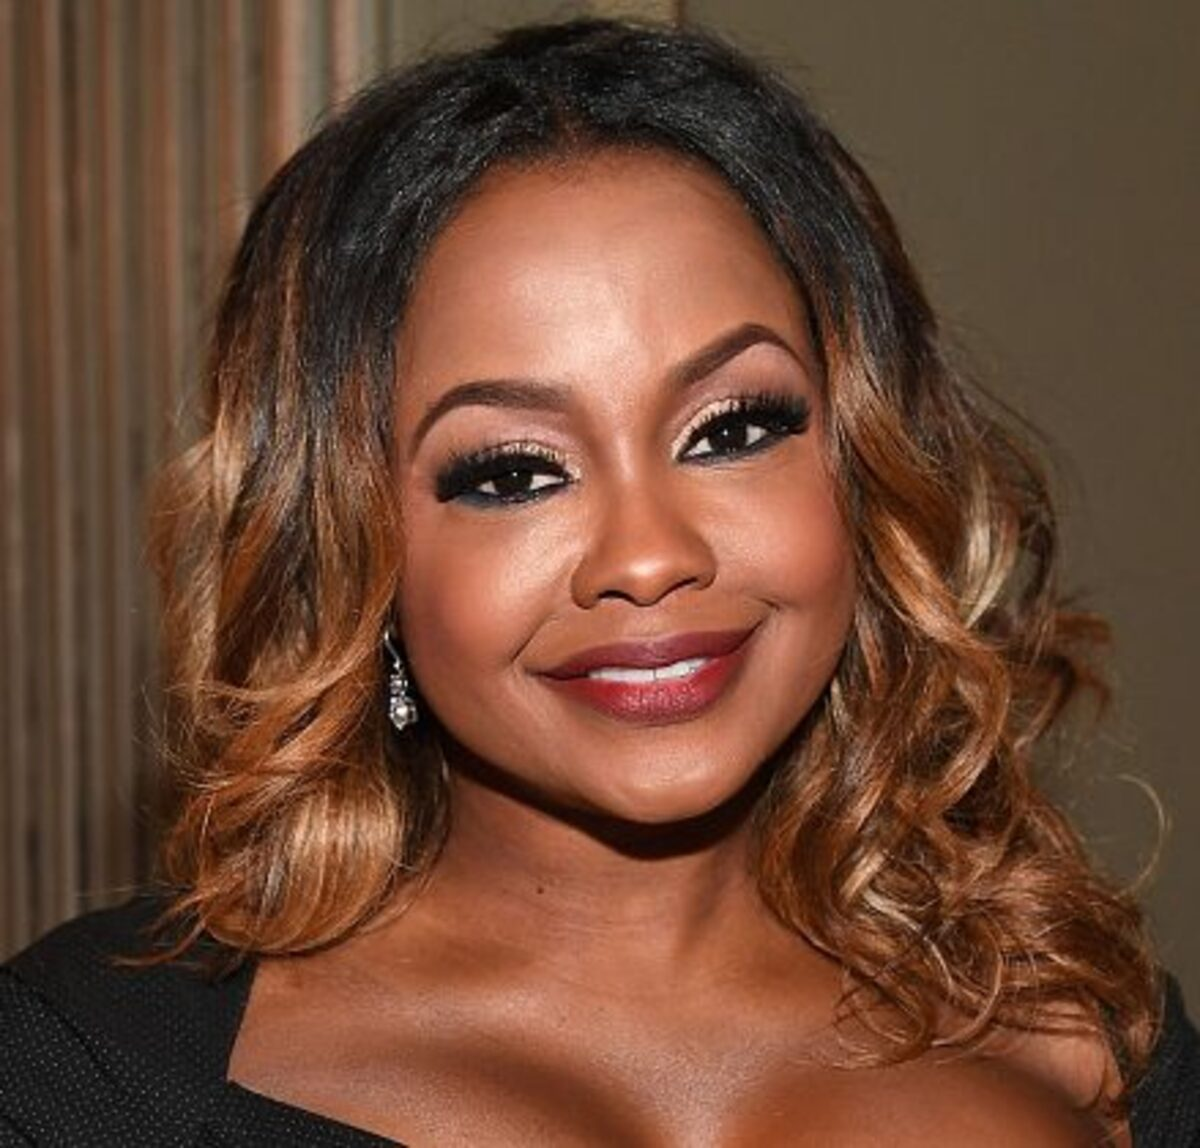 Phaedra Parks Is Proud Of Her Friend Who Ensured Justice For People